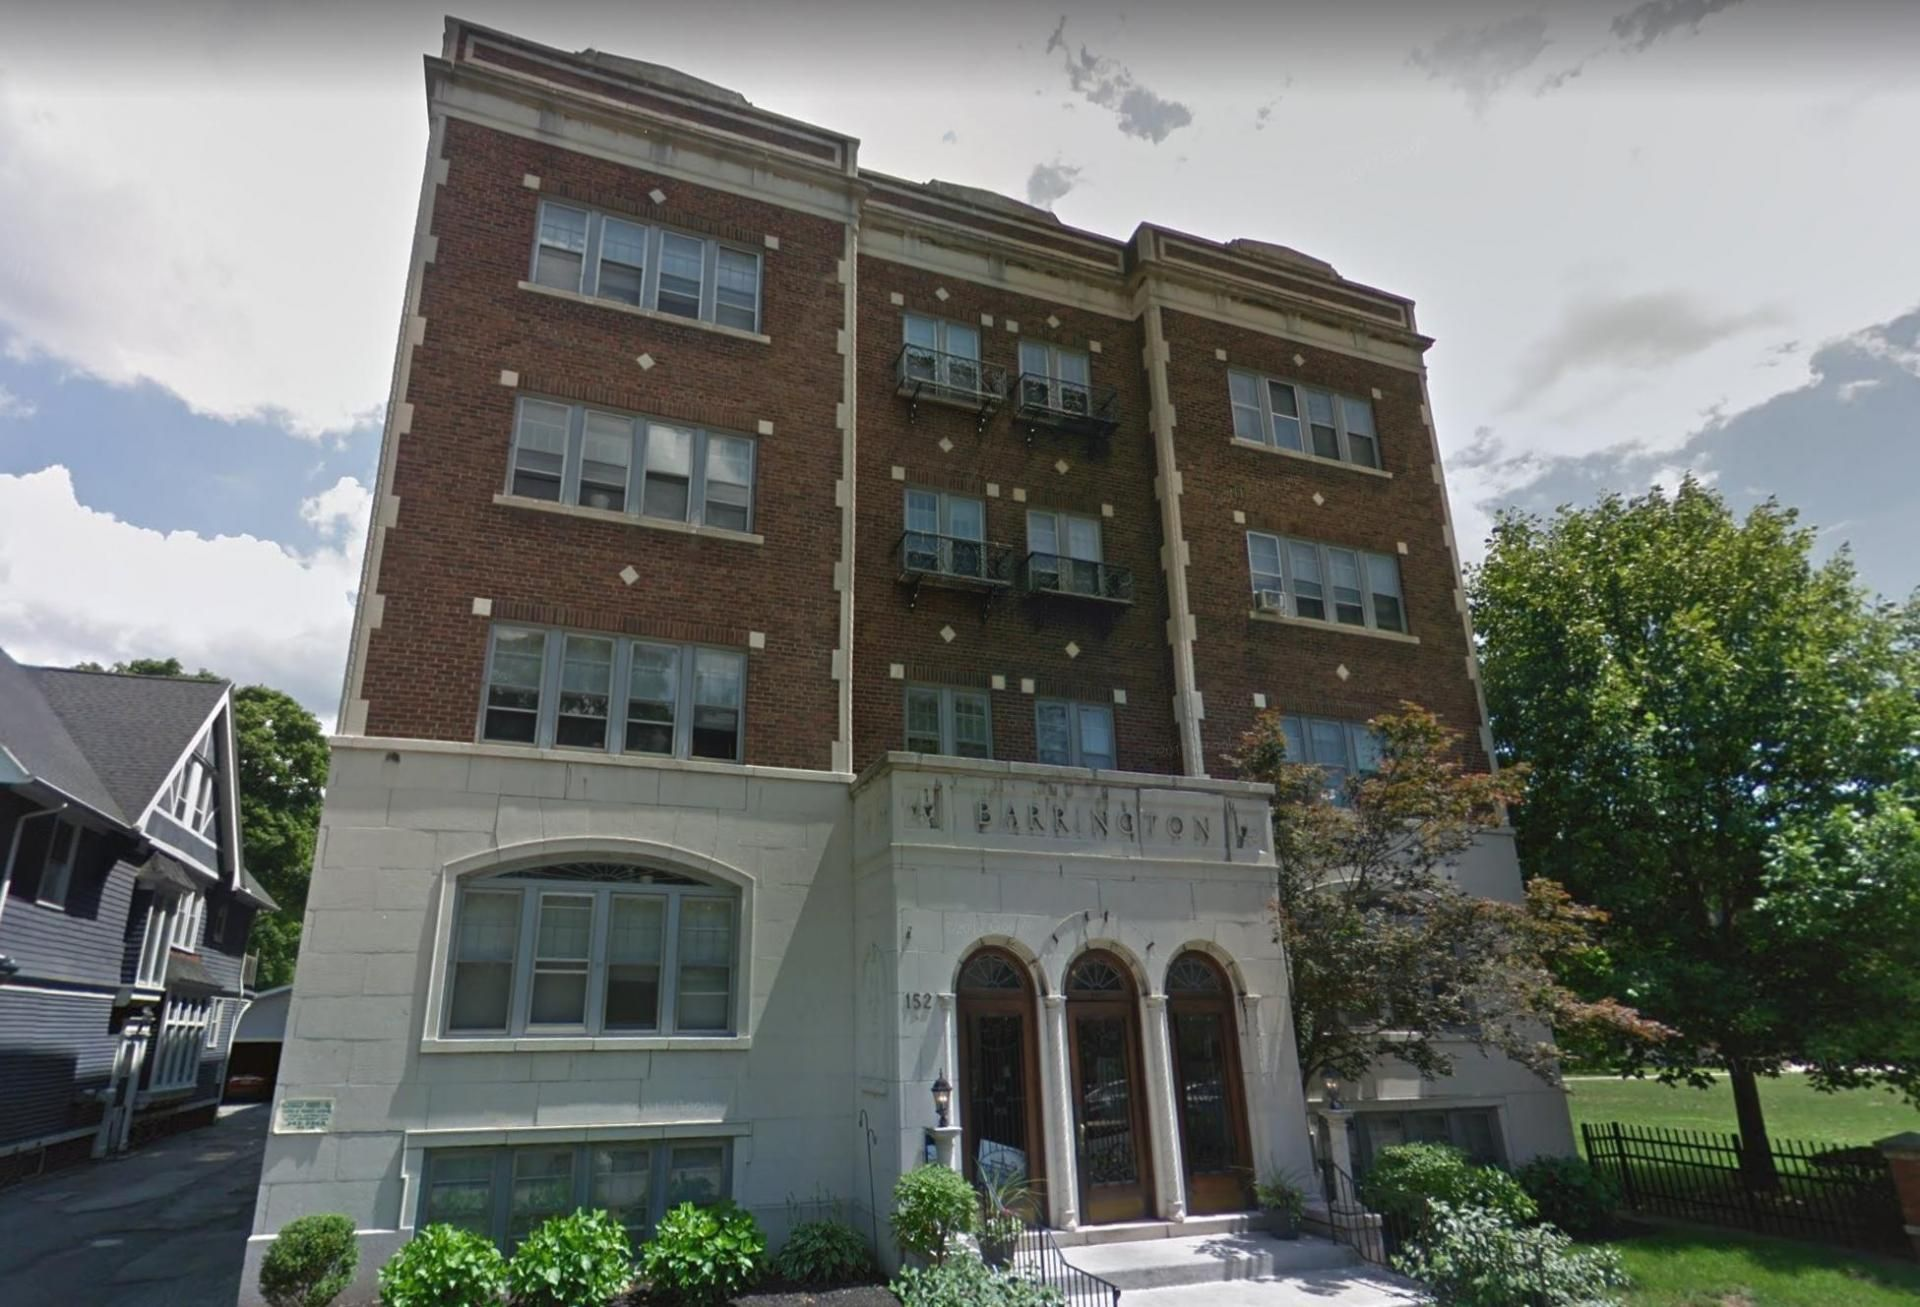 Morgan Properties Buys 18,000 Apartments From Company Founded By Alleged Ponzi Schemer